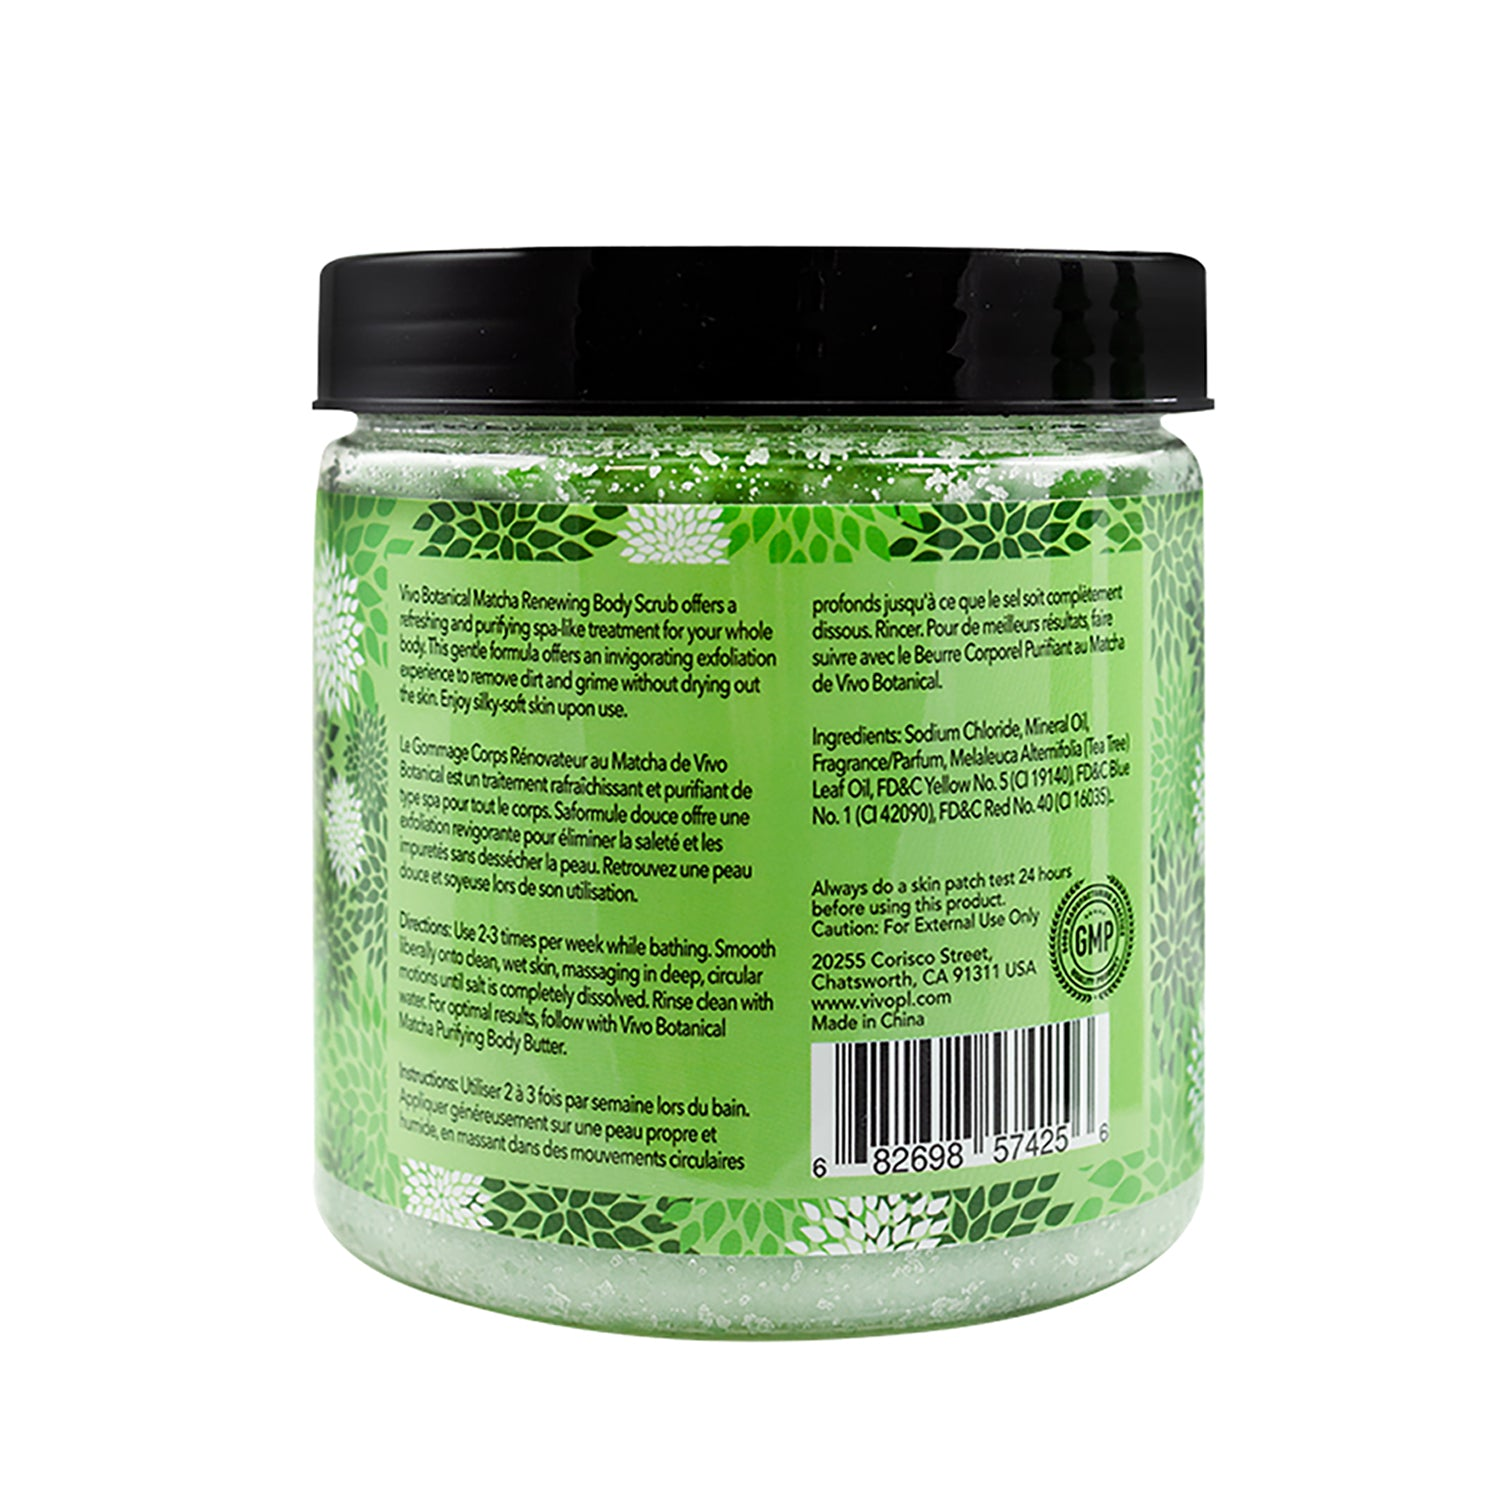 Vivo Per Lei Matcha Body Scrub Green Tea Exfoliating